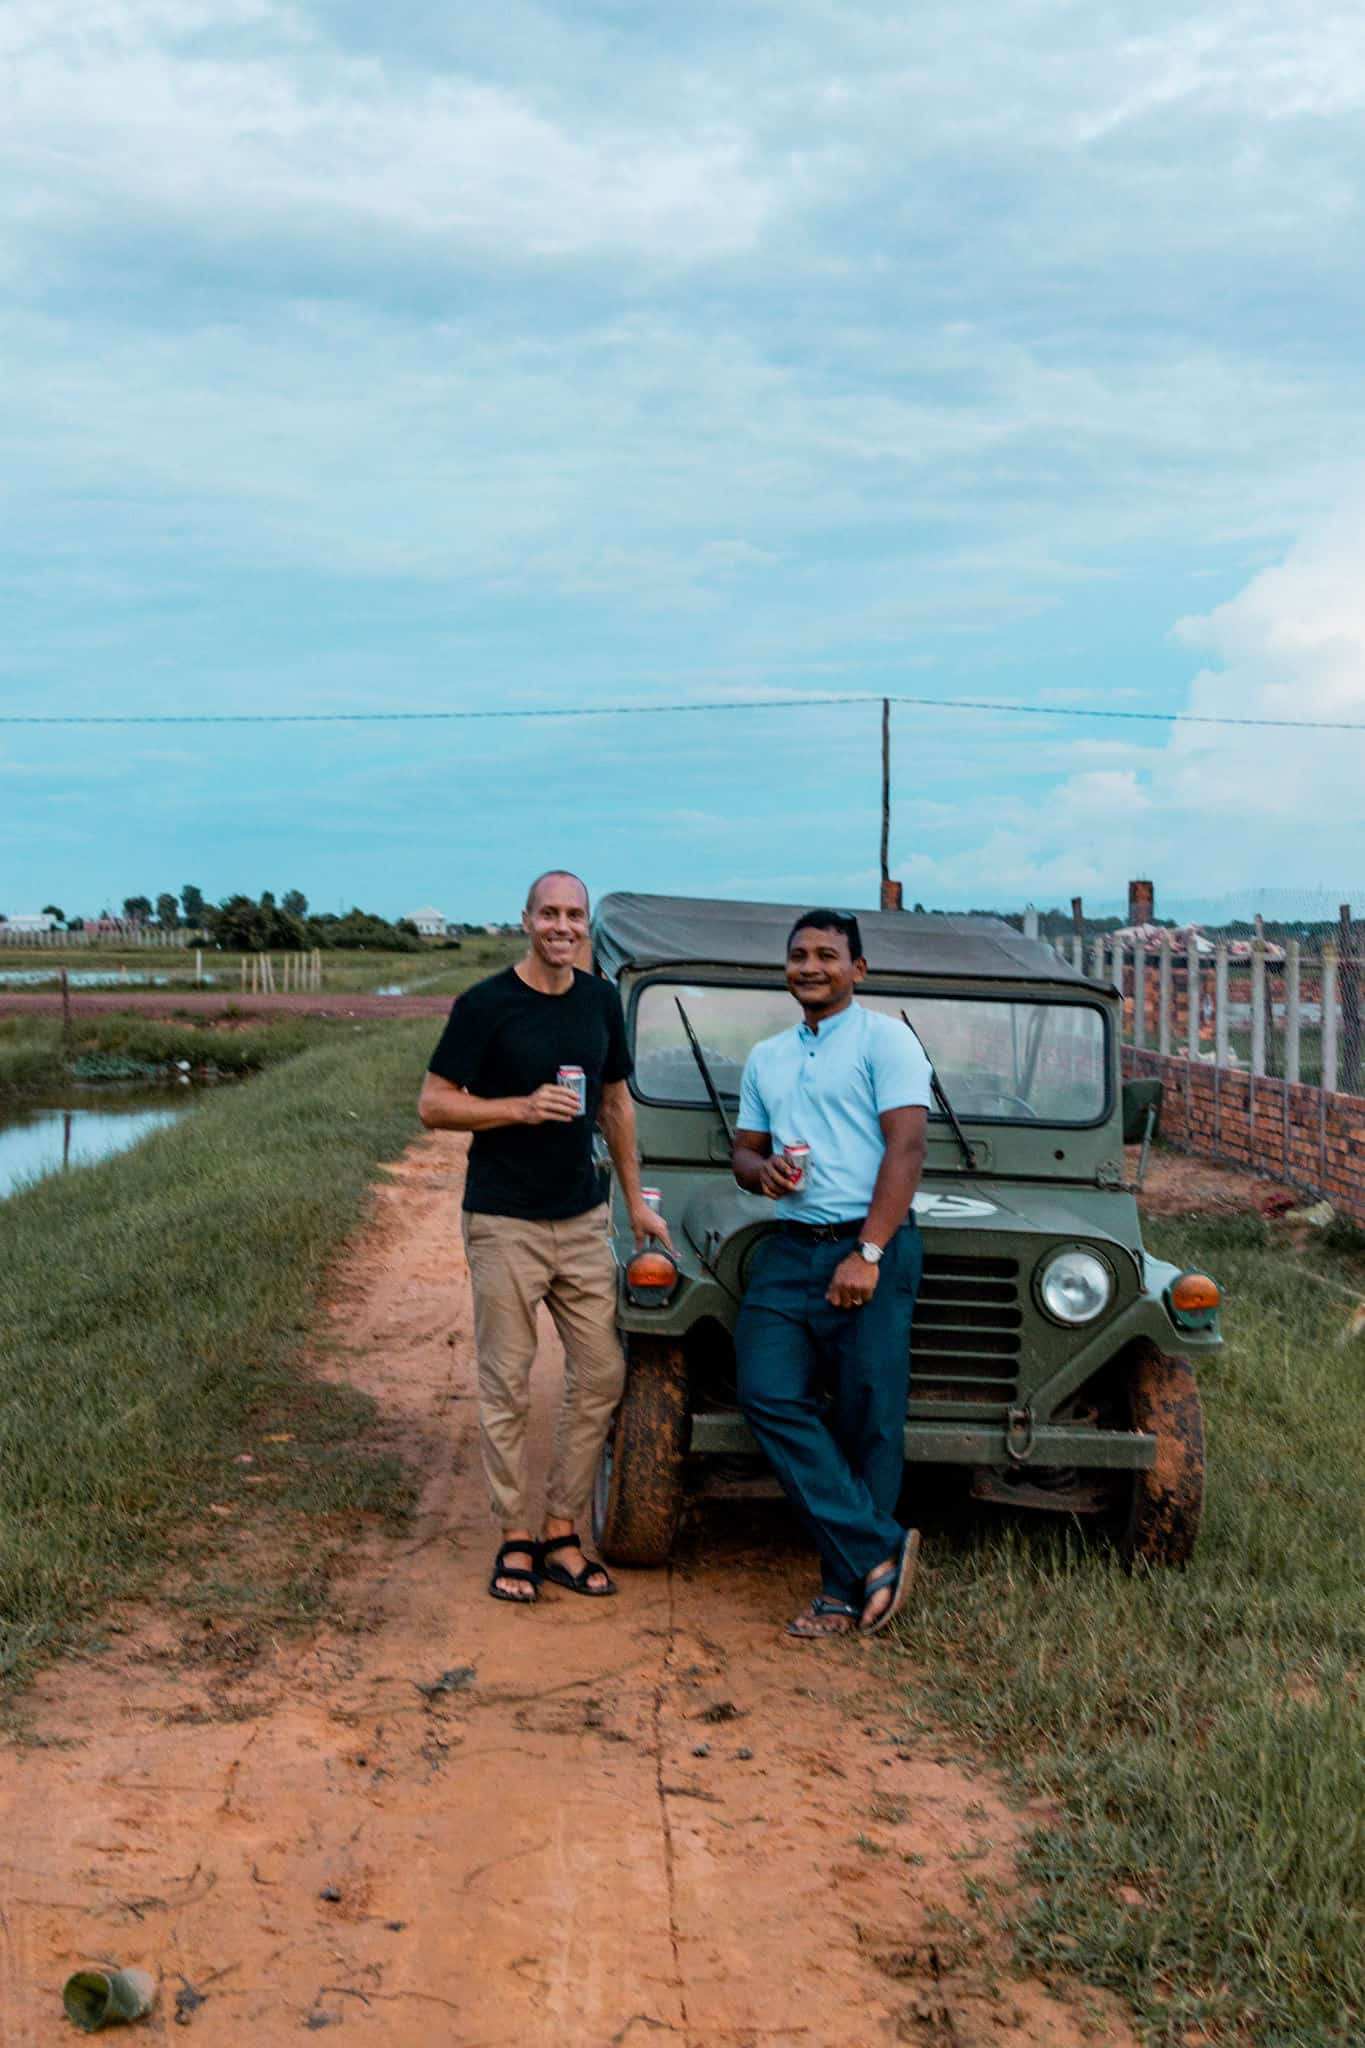 Nathan & Mork by the Jeep